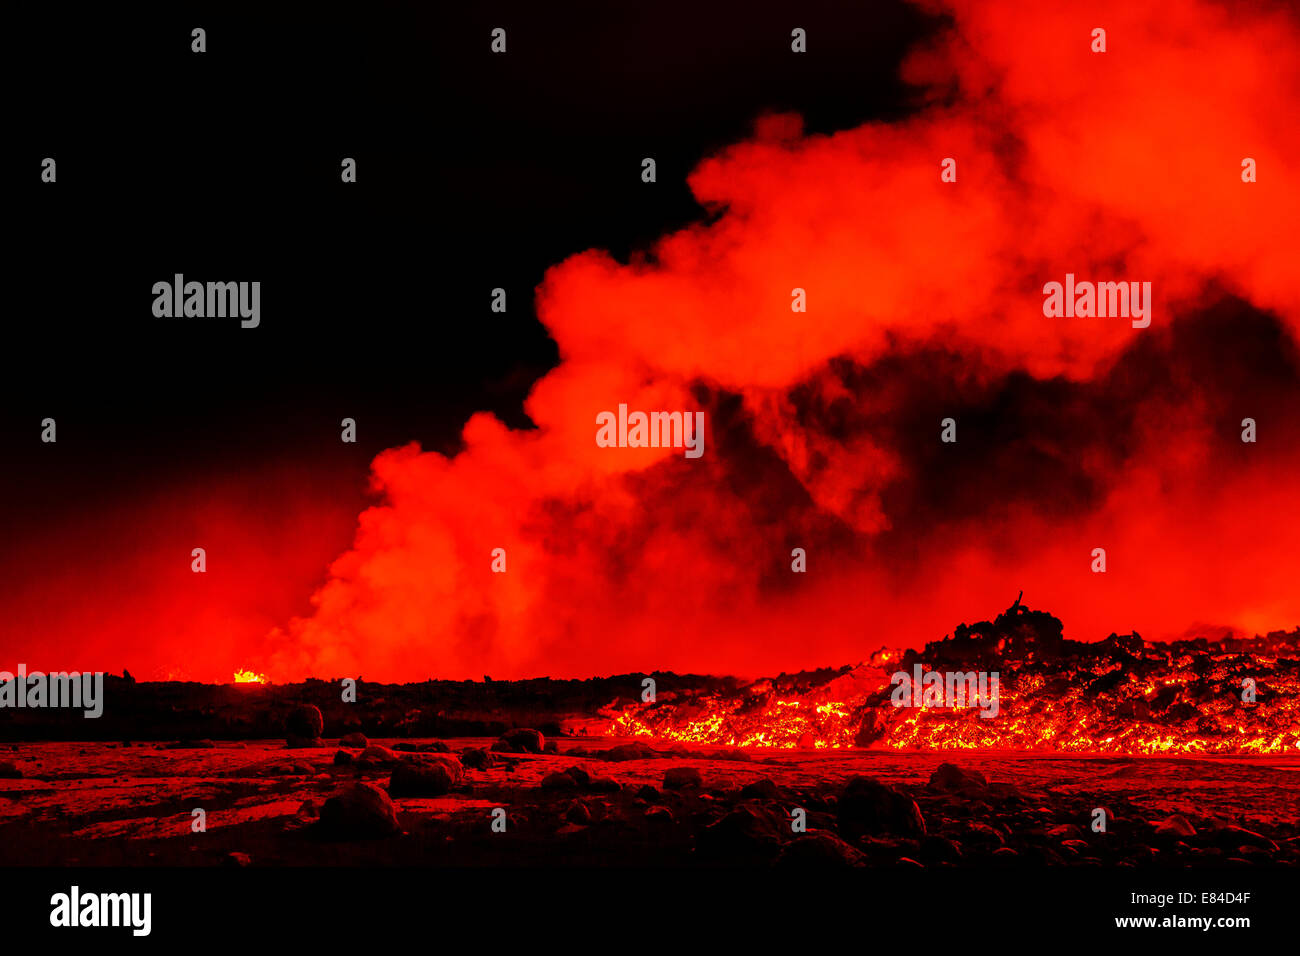 Lava and plumes from the Holuhraun Fissure Eruption, by the Bardarbunga Volcano, Iceland. Stock Photo